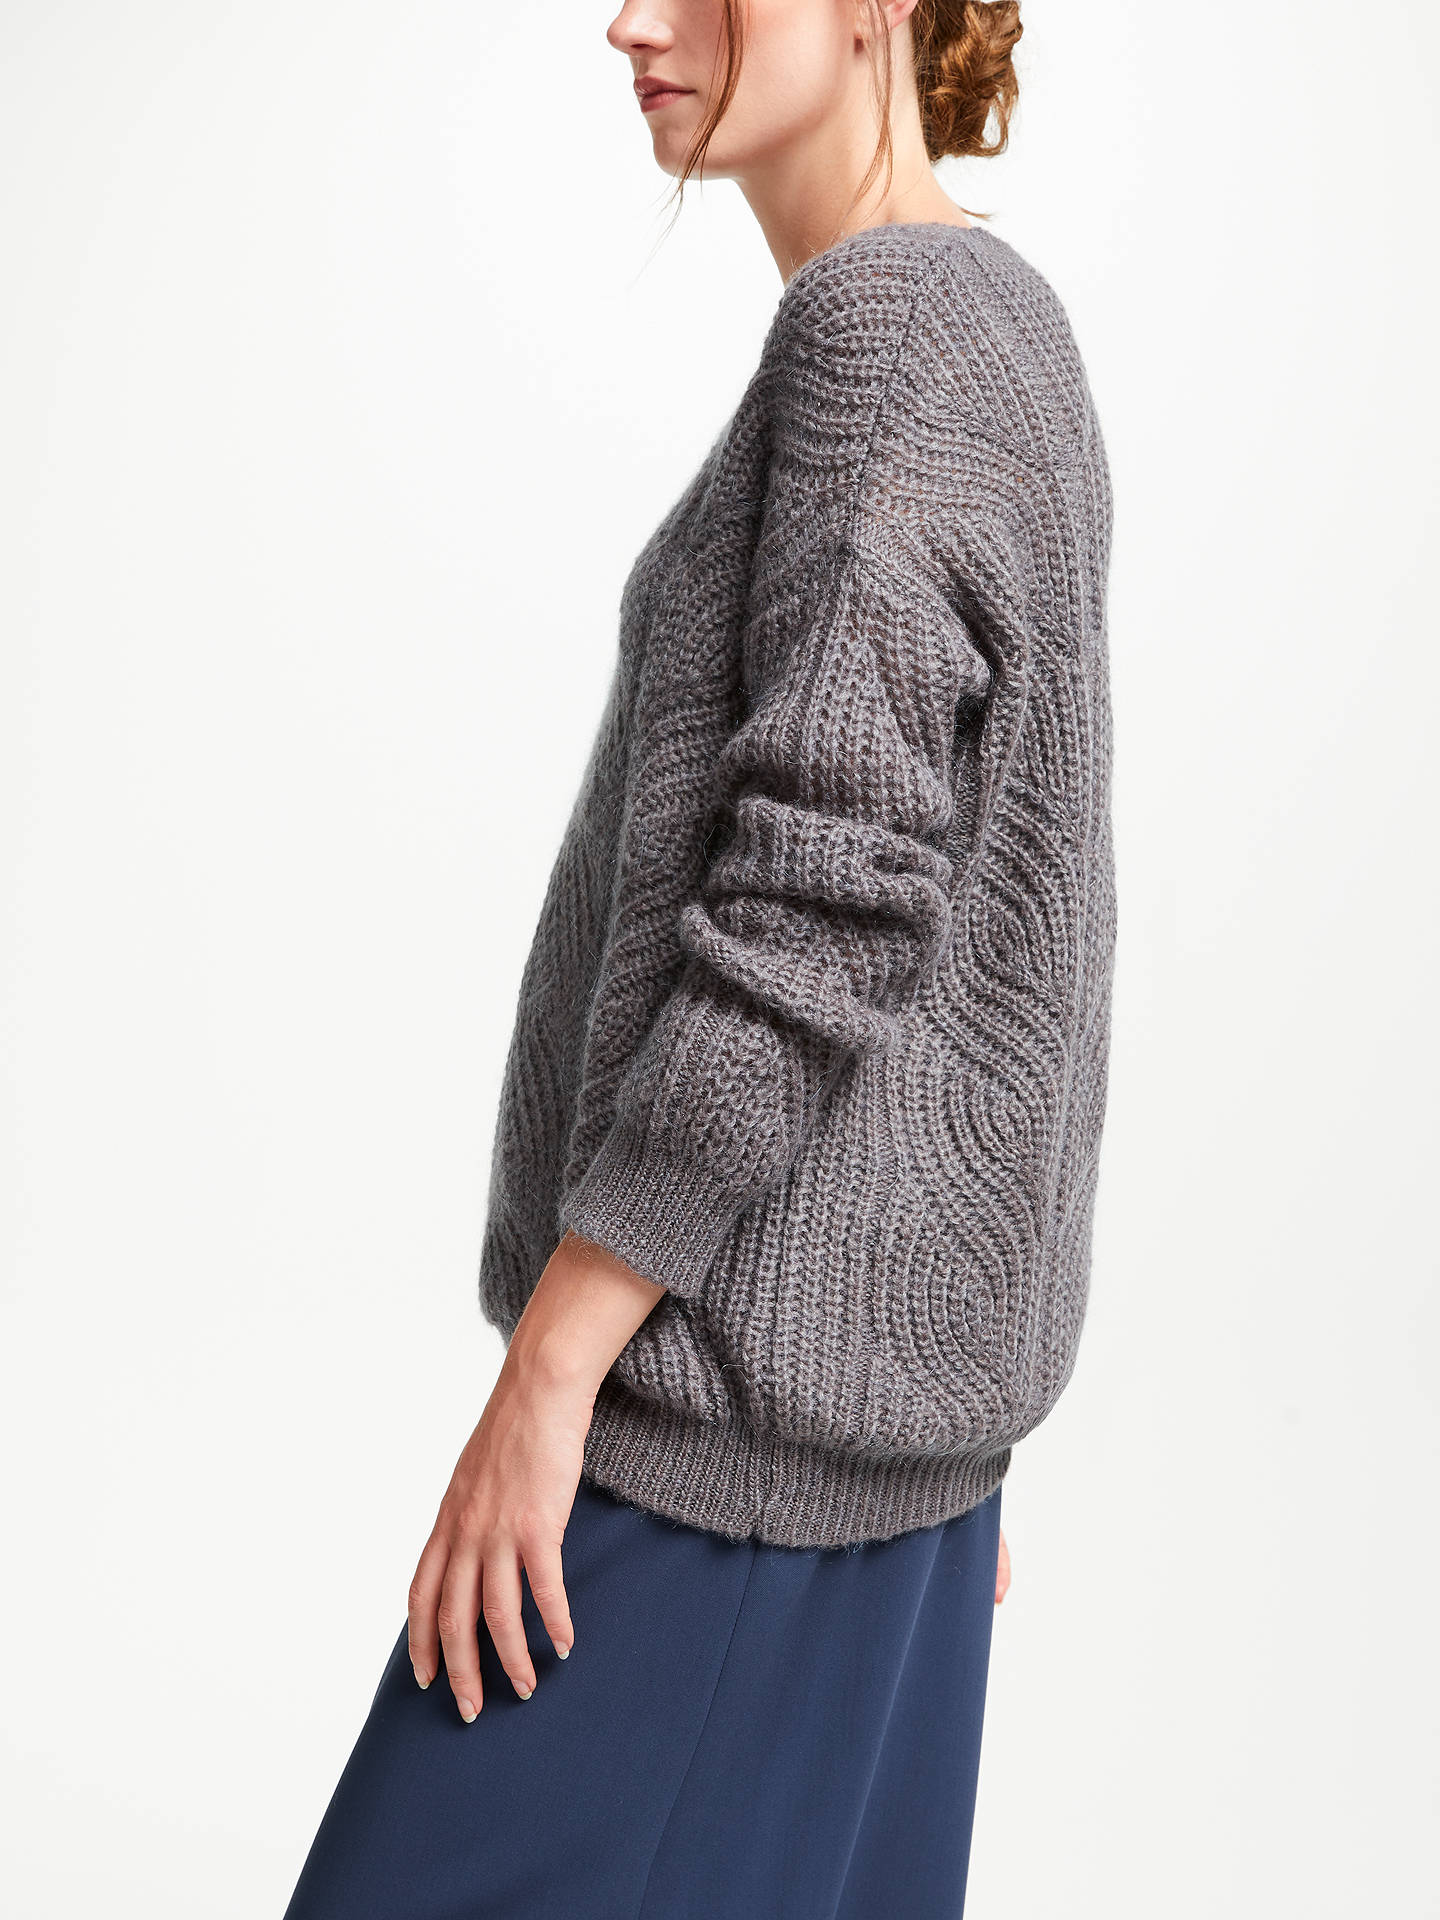 BuyModern Rarity Cable Knit Jumper, Heather, XS Online at johnlewis.com